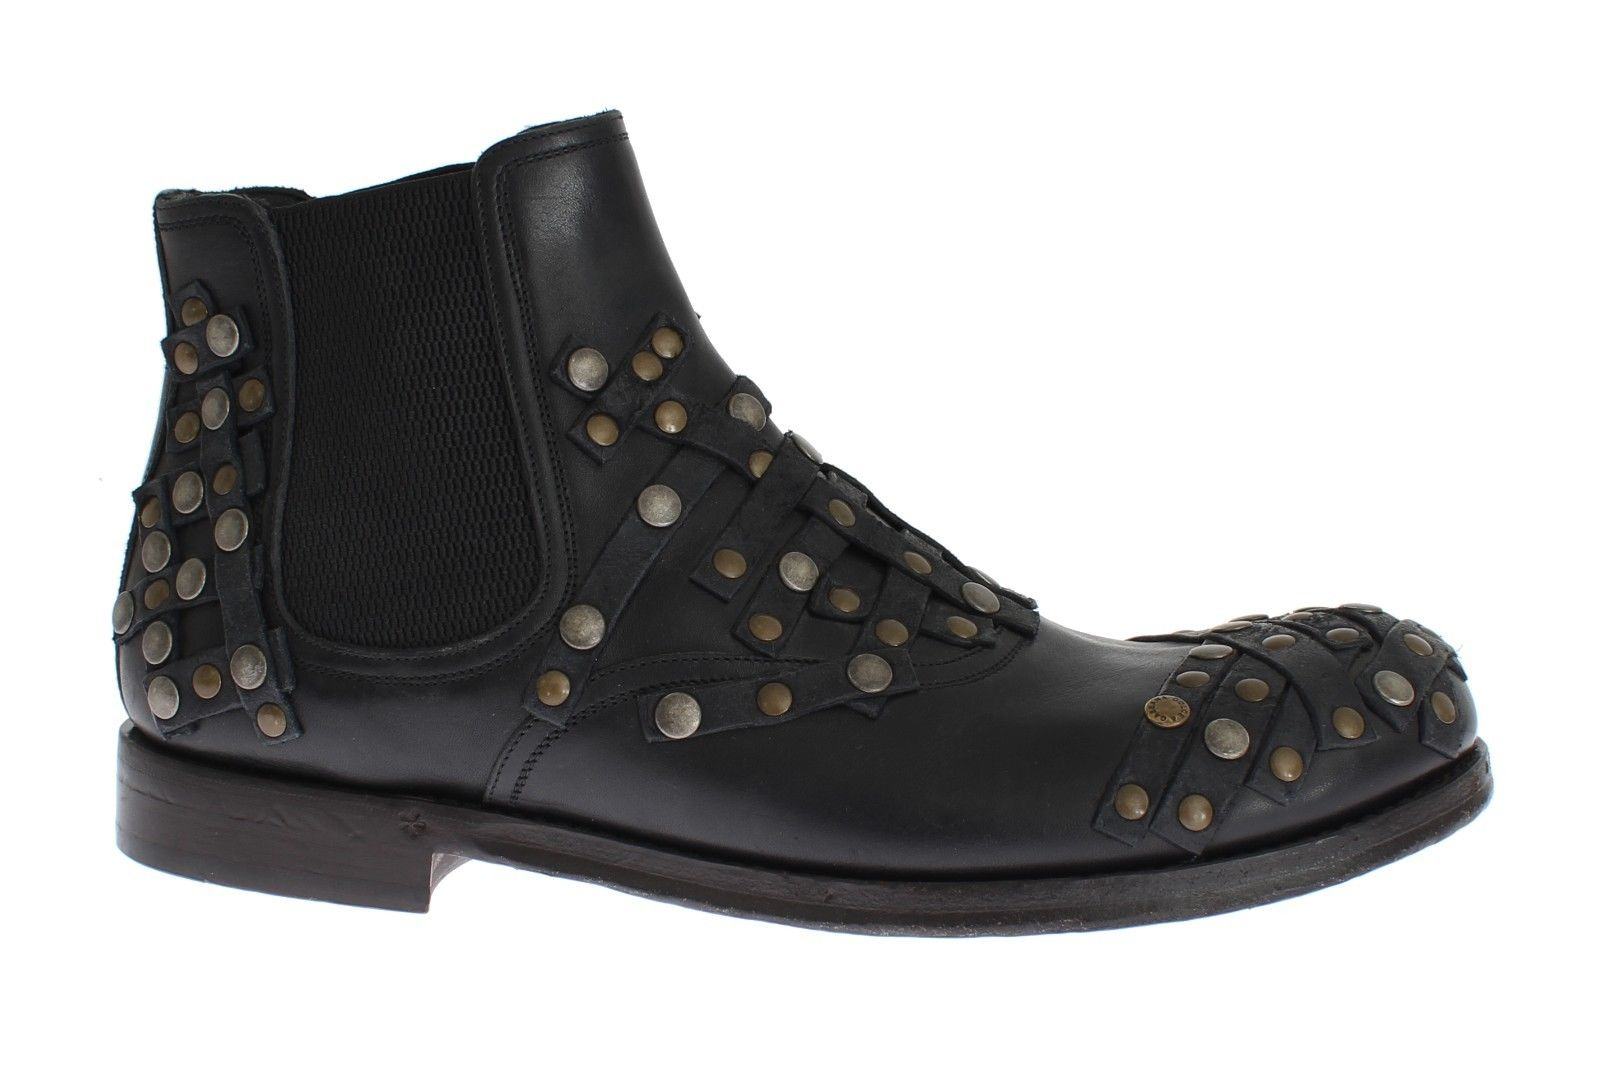 Dolce & Gabbana - Black Leather Gold Studded Shoes Boots